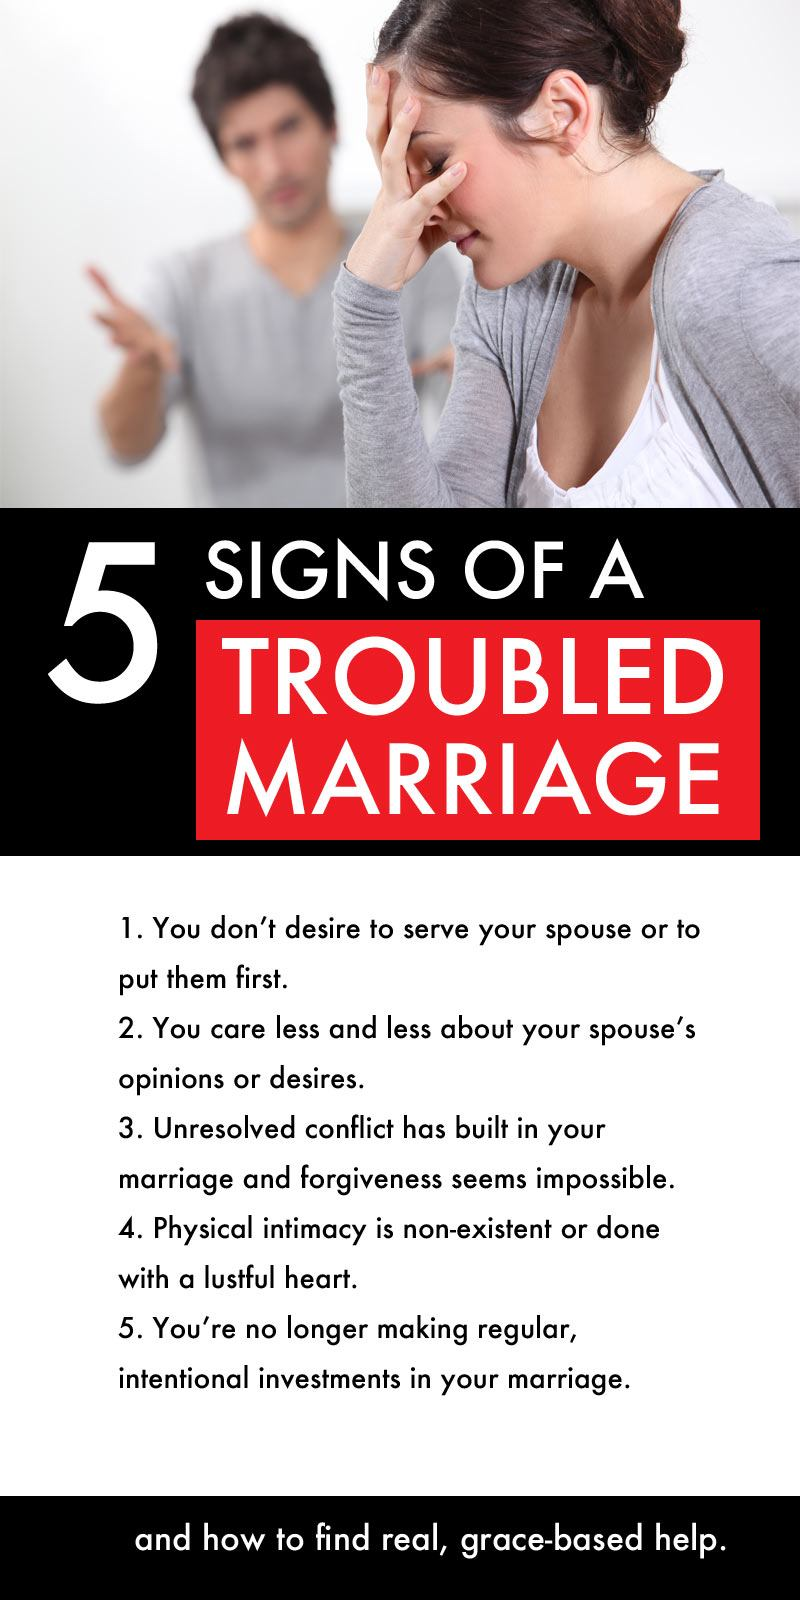 signs of a broken marriage | Christian marriage issues | troubled marriage advice | signs failing marriage